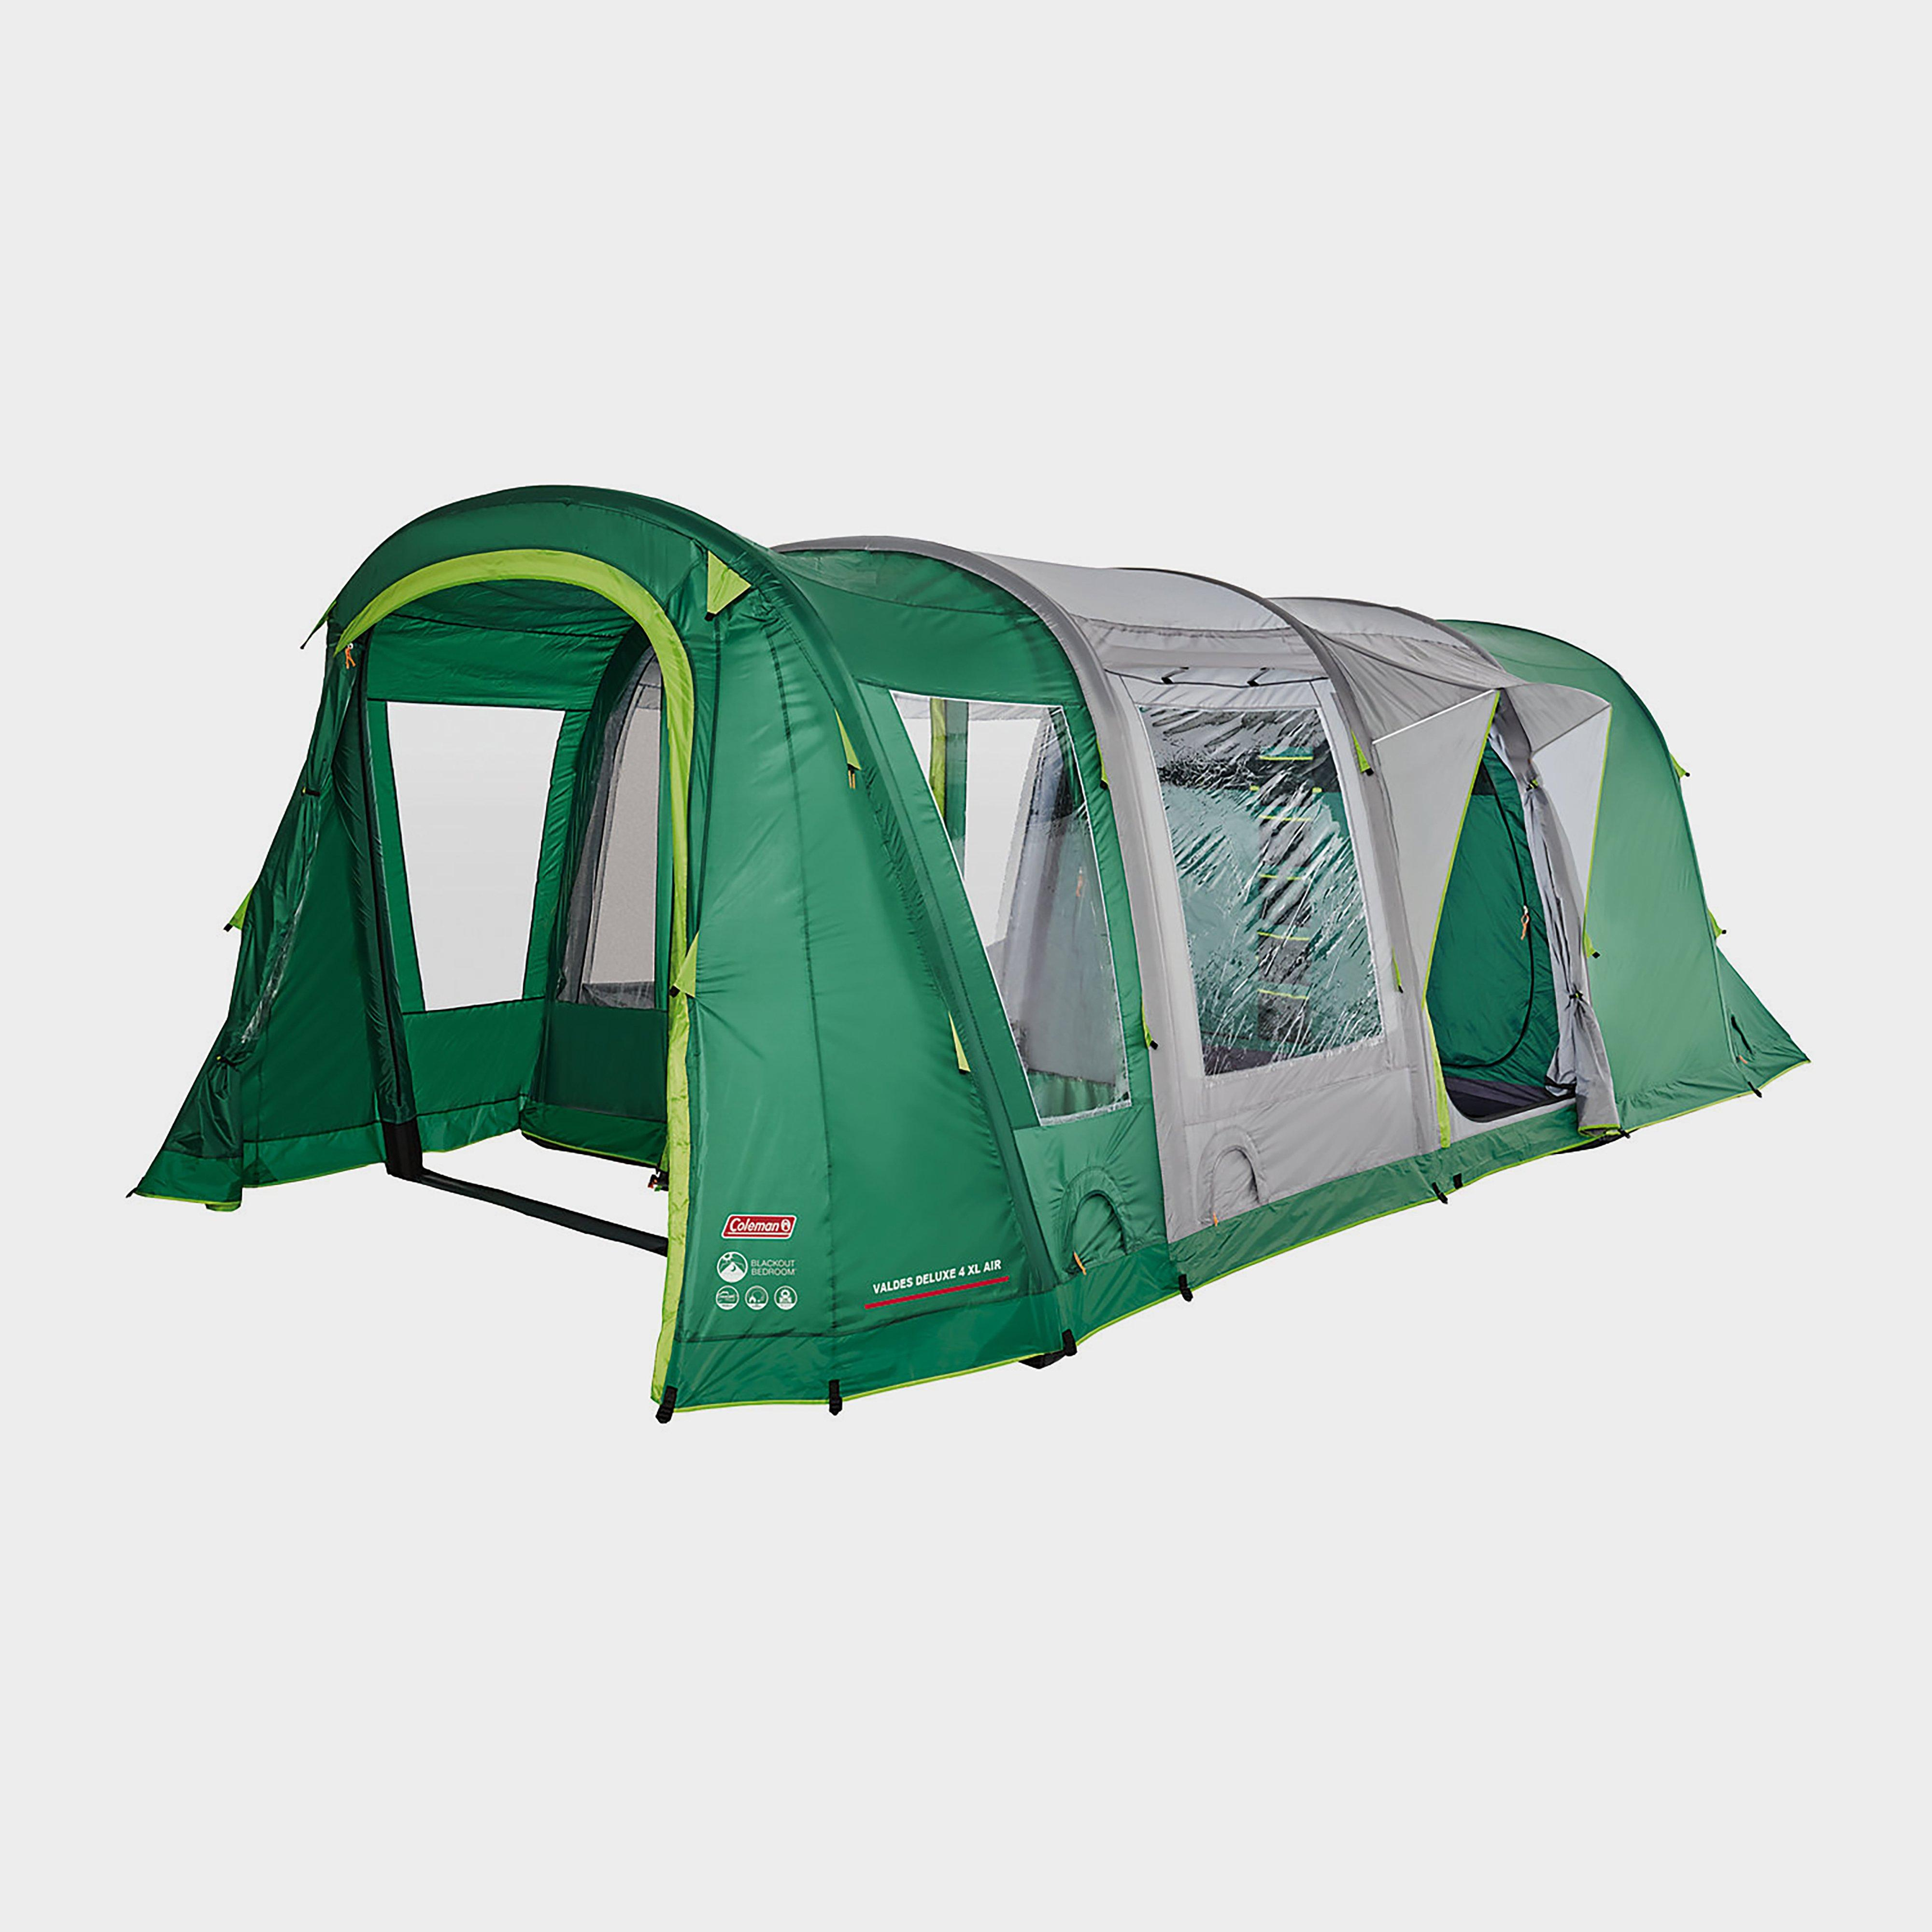 Coleman Valdes Deluxe 4 Xl Air Blackout Bedroom Family Tent - Green/Green, Green/Green